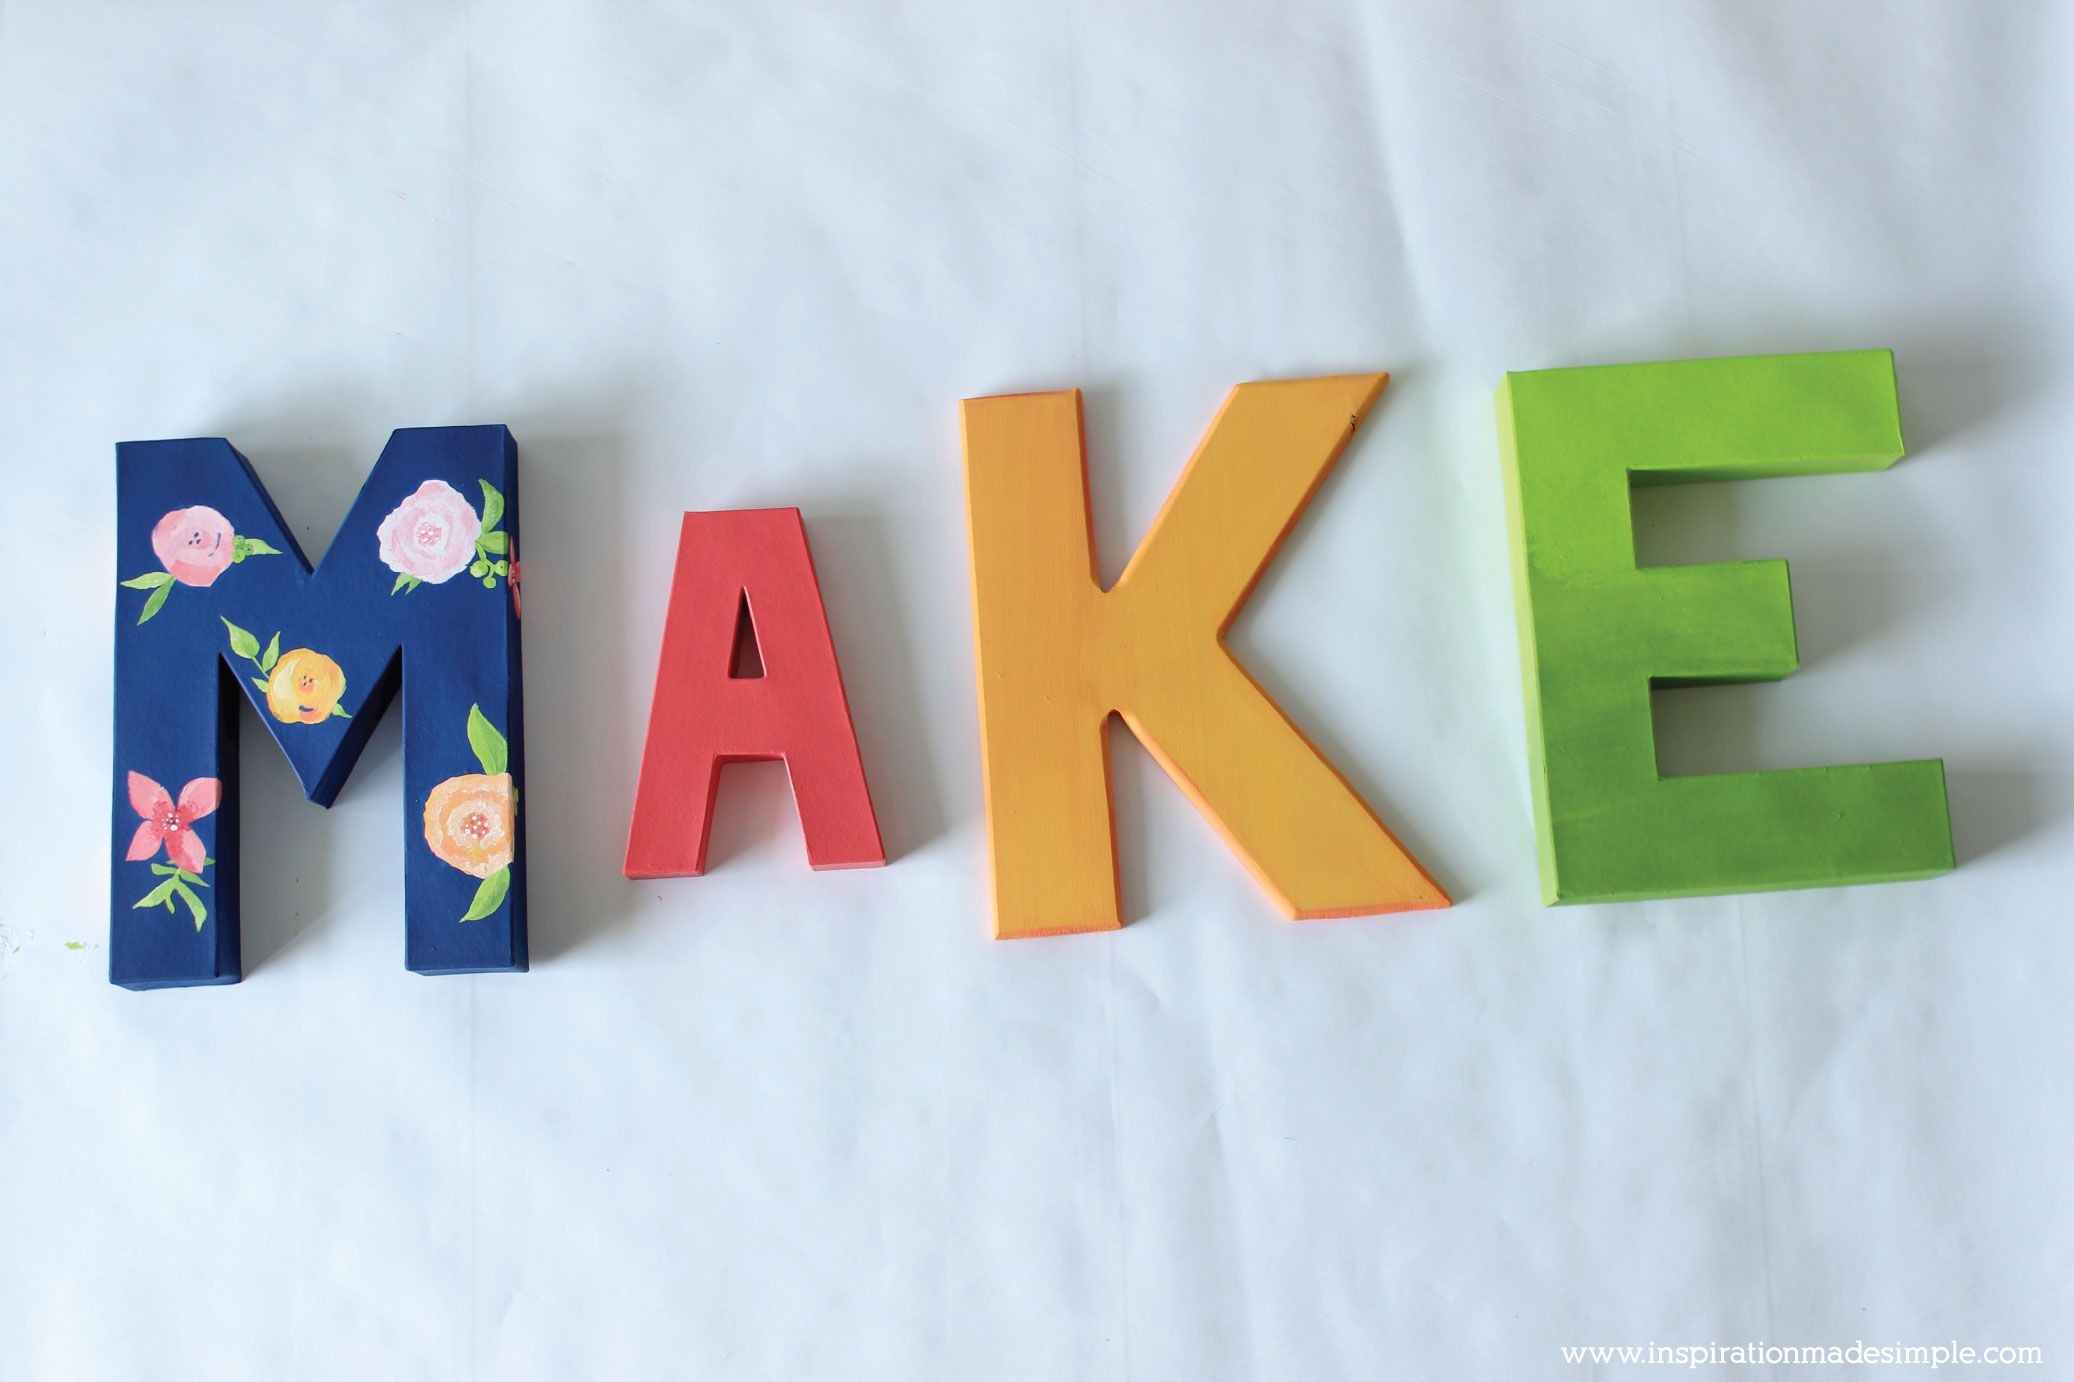 Diy Letras Decorativas Diy Painted Letters Navy Blue With Floral Letras